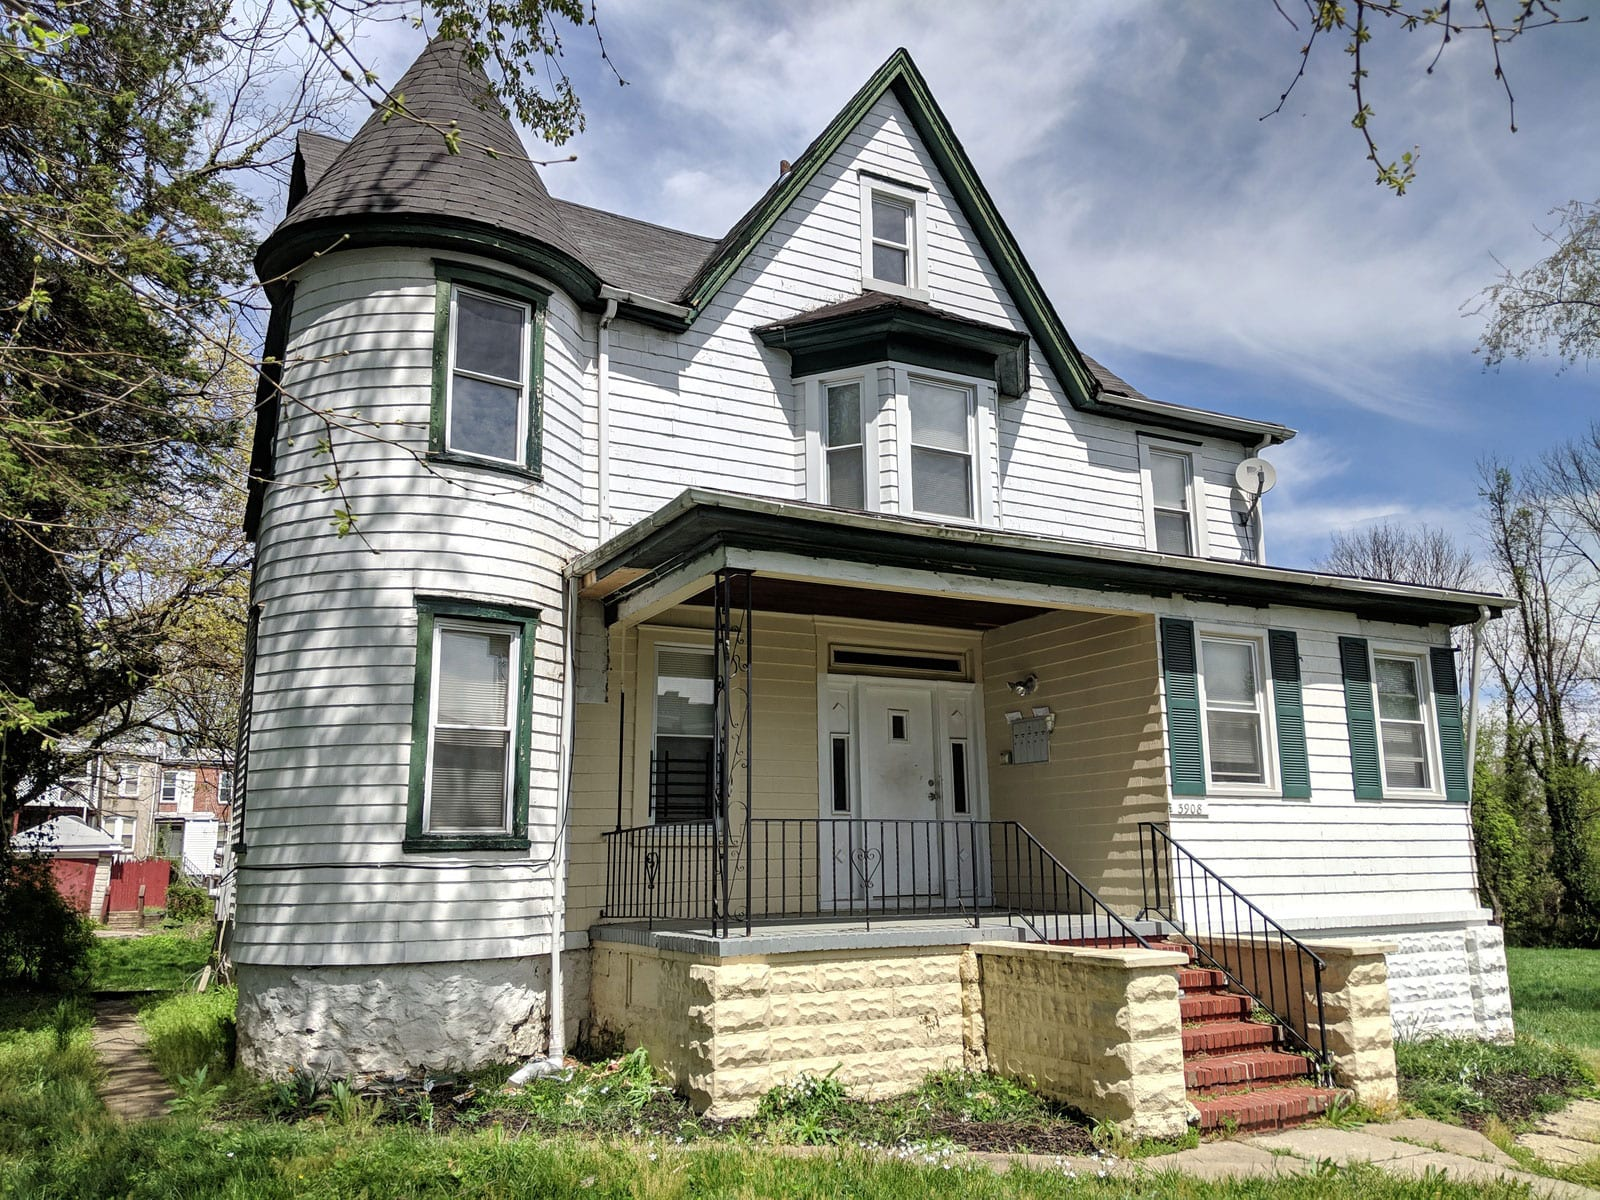 3908 Belle Ave: 5-Unit Value-Add Opportunity in Arlington